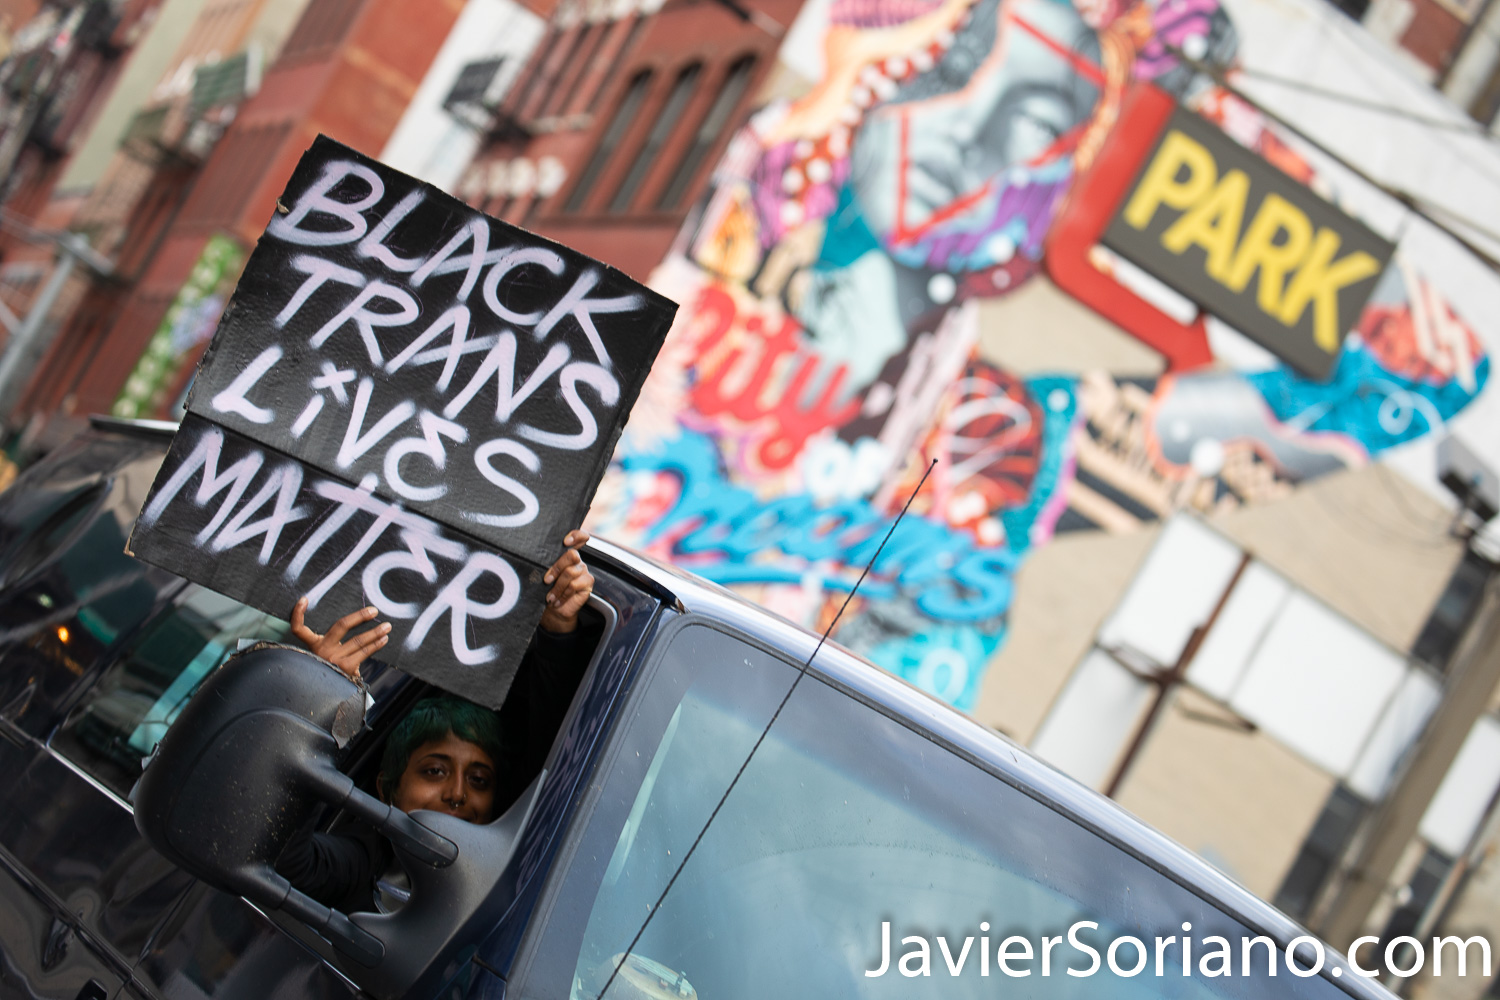 """Tuesday, June 2, 2020. New York City - March from The Stonewall Inn to the Lower Manhattan to demand justice for George Floyd, Breonna Taylor, and too many others victims of police violence in the United States of America. A person observing the march. The sign says, """"Black Trans Lives Matter"""". Photo by Javier Soriano/www.JavierSoriano.com"""